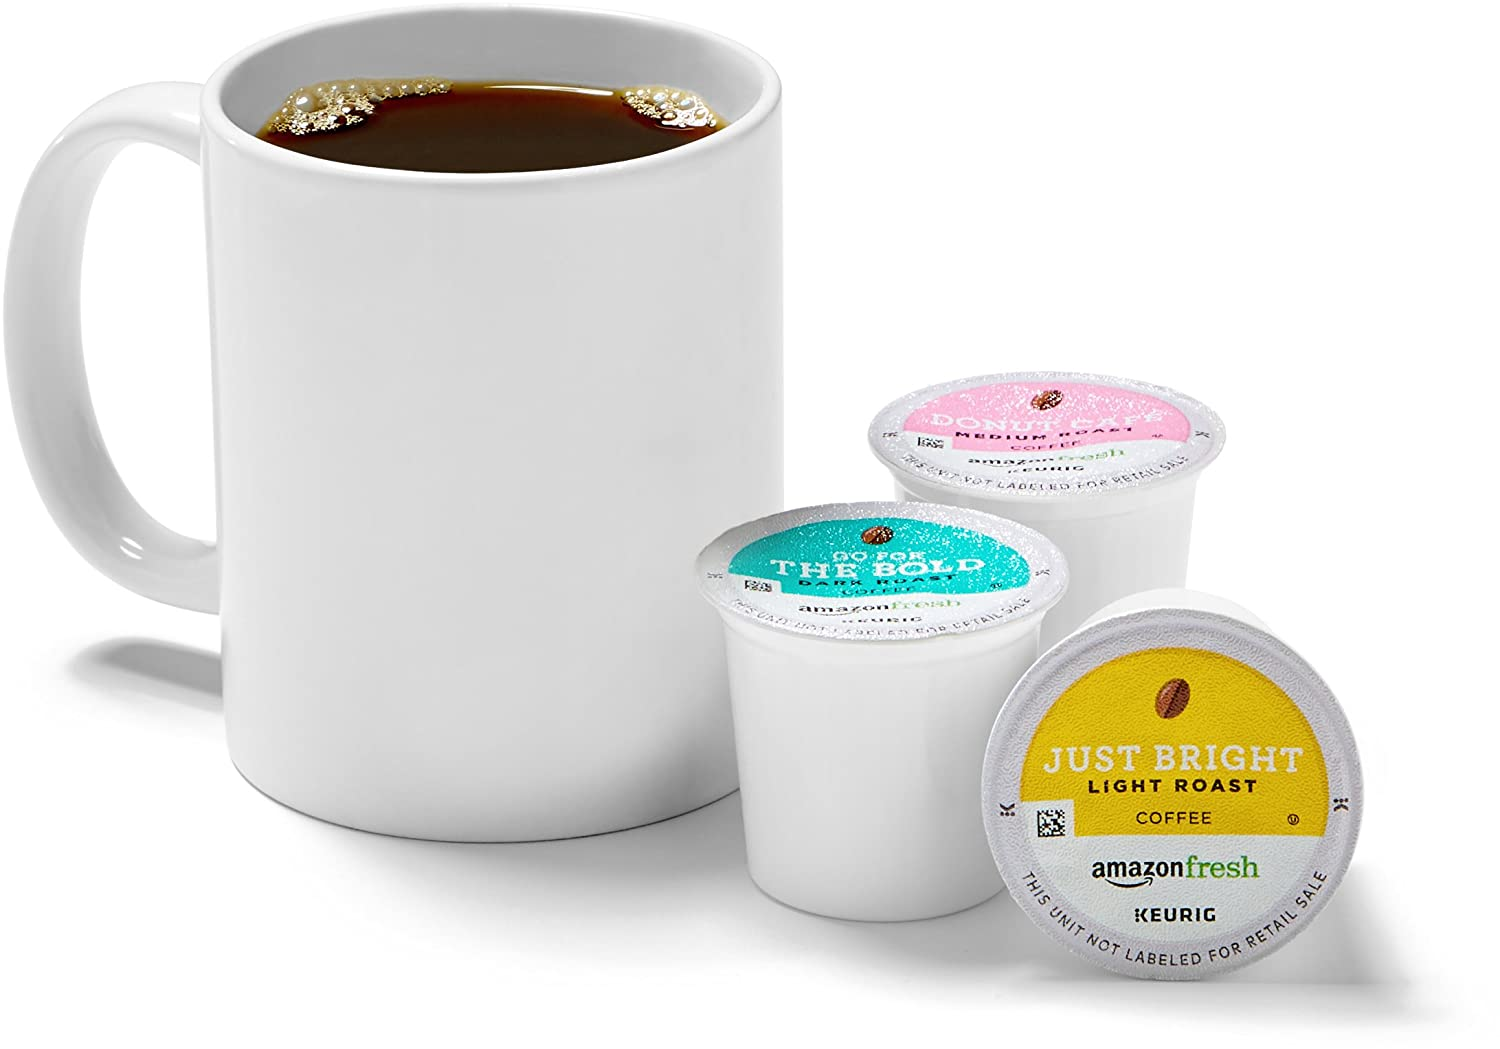 AmazonFresh 60 Ct. Coffee Variety Pack, 3 Flavors, Keurig K-Cup Brewer Compatible